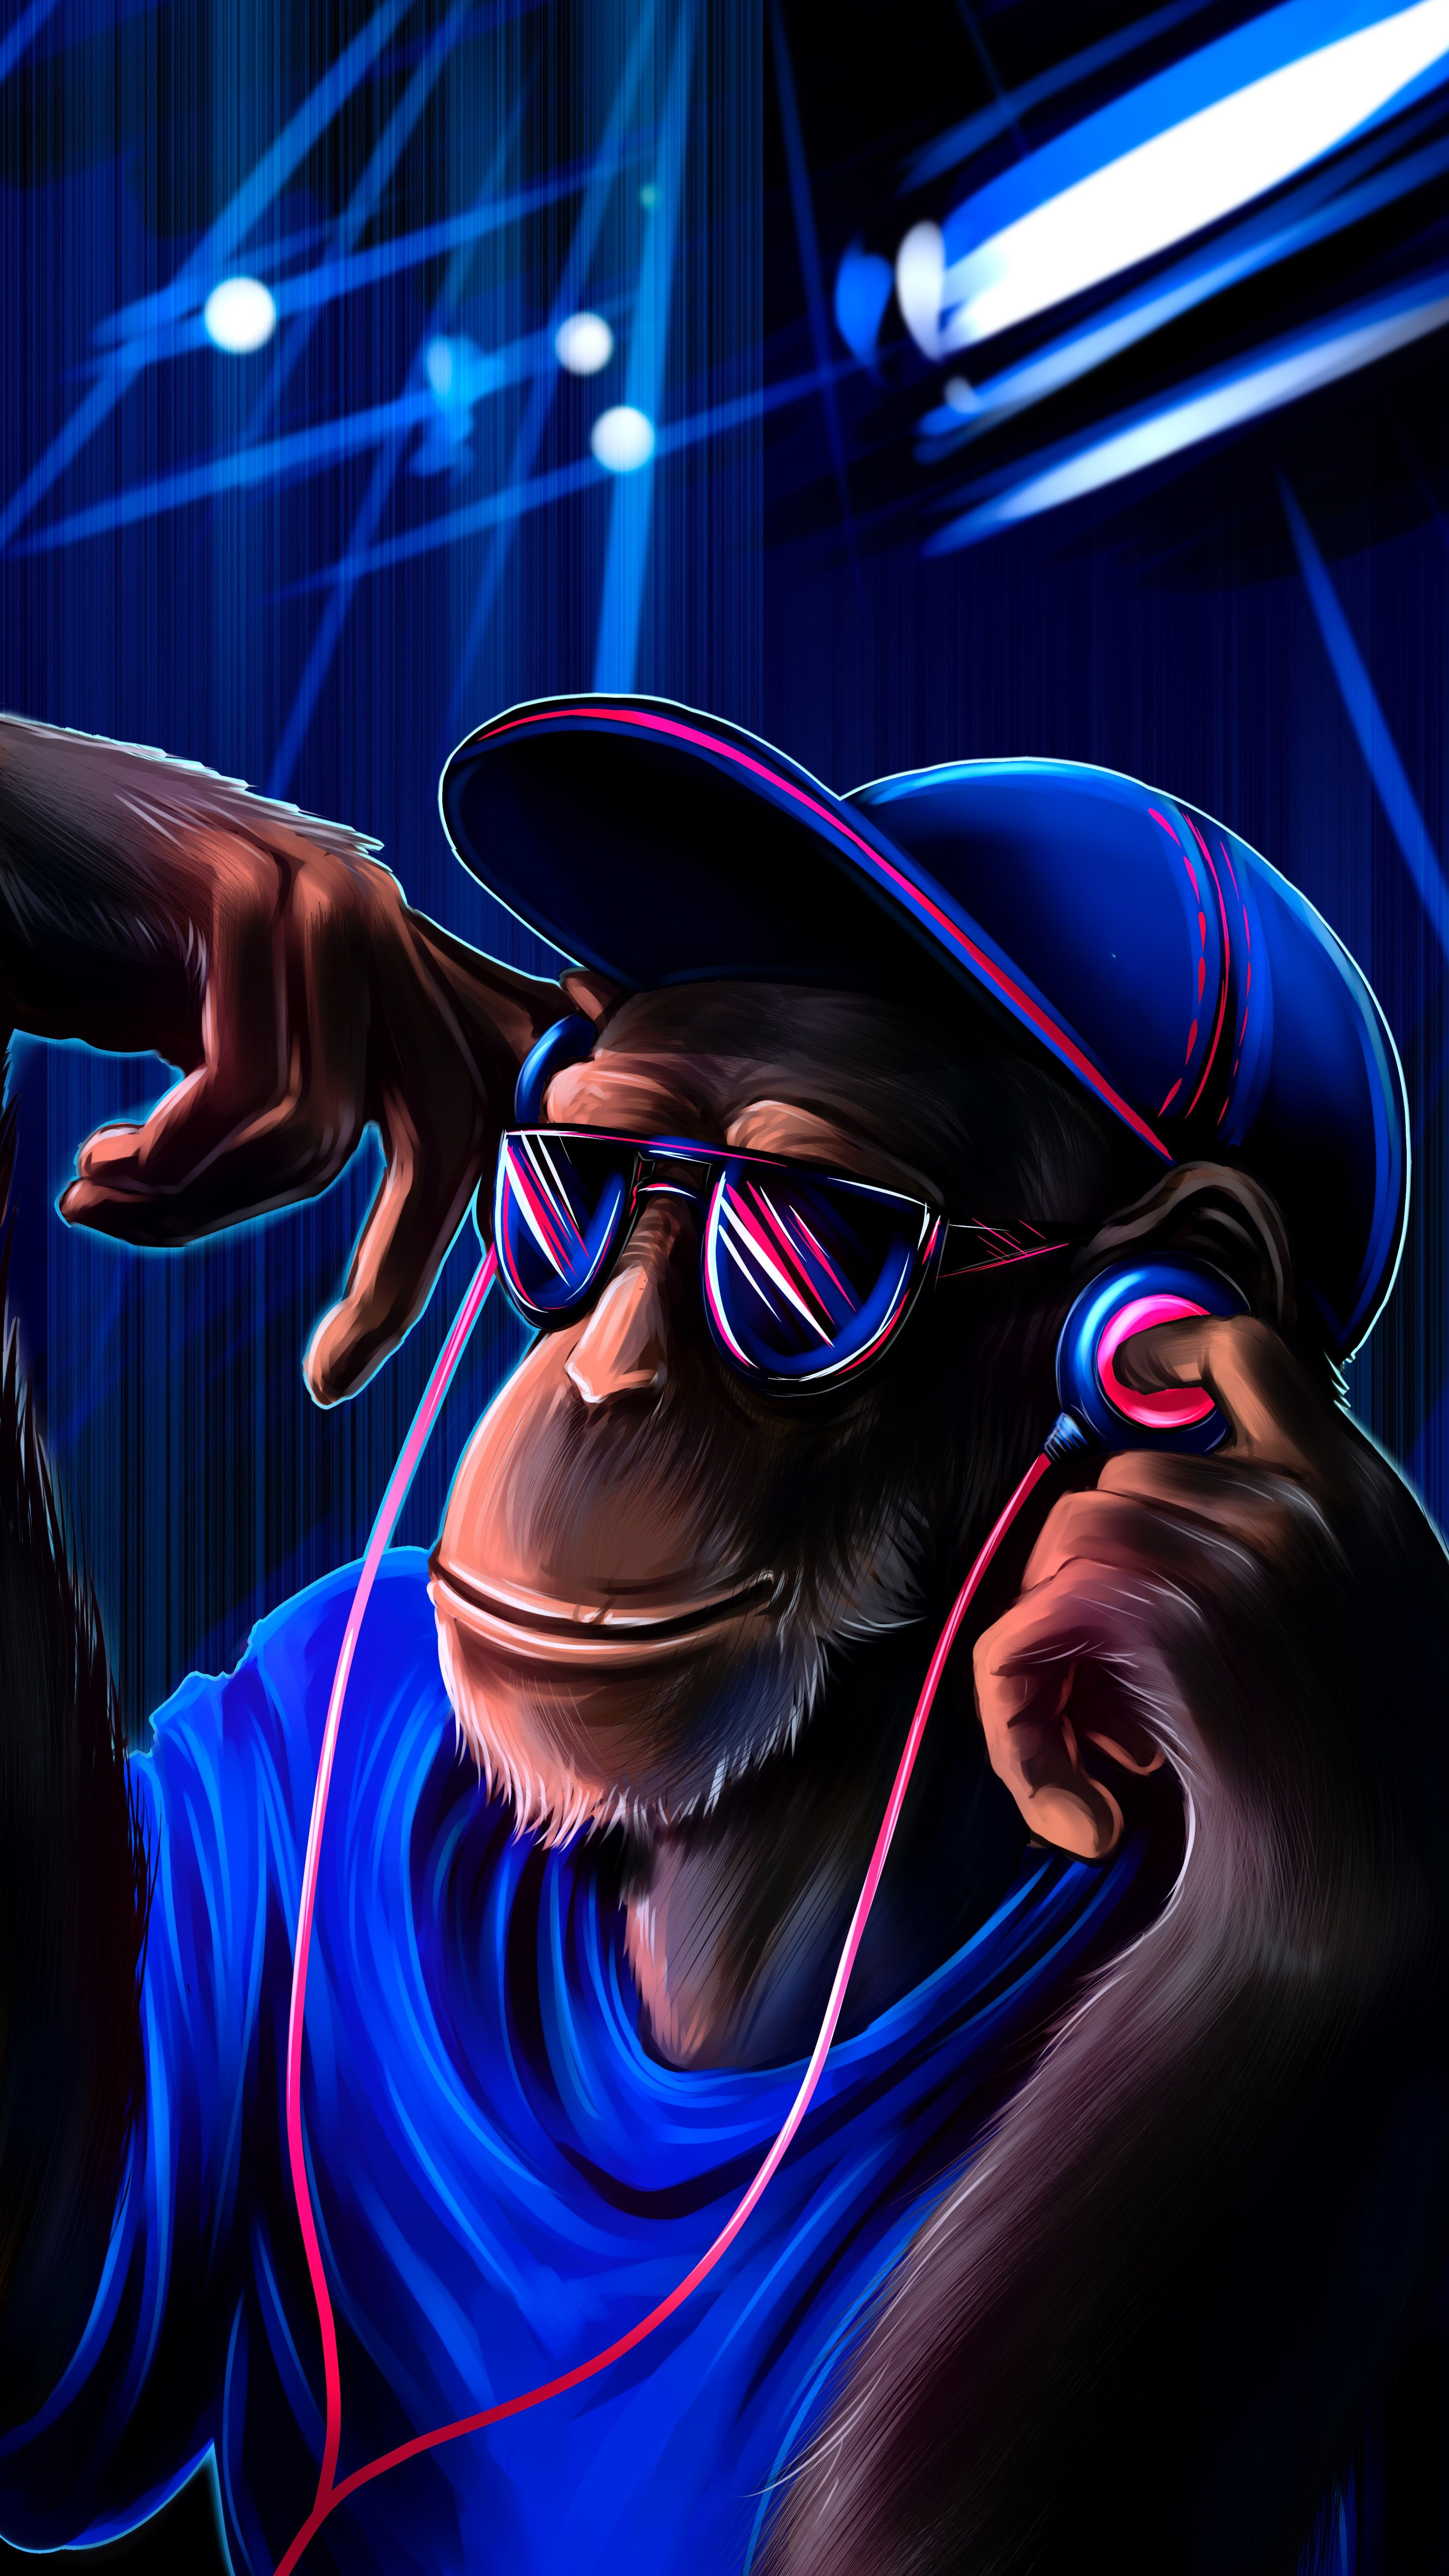 Pin By Wallpapers Phone Pad Hd On 9 16 Phone Crazy Wallpaper Monkey Wallpaper Graffiti Wallpaper Iphone